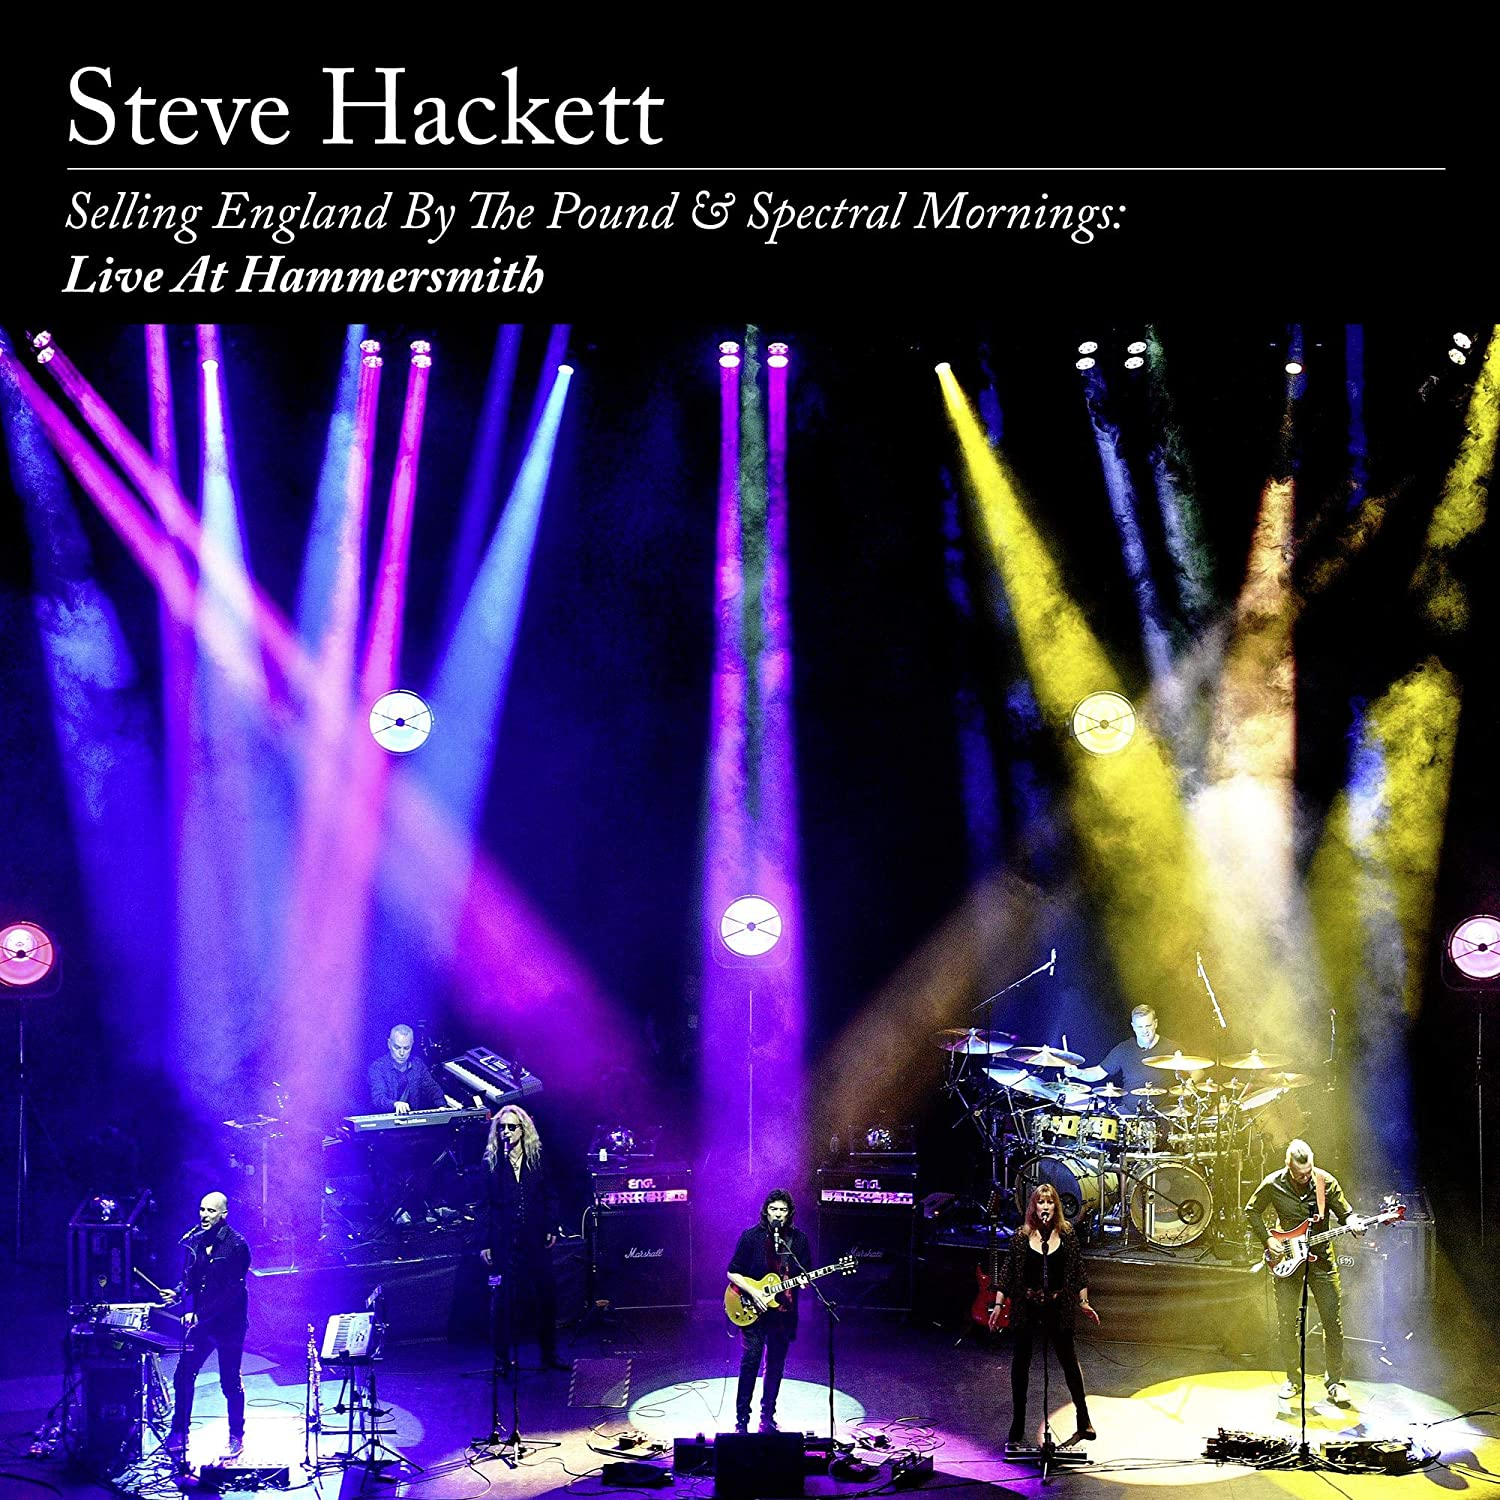 Steve Hackett - Selling England By The Pound & Spectral Mornings: Live at Hammersmith [Import 2CD/DVD]